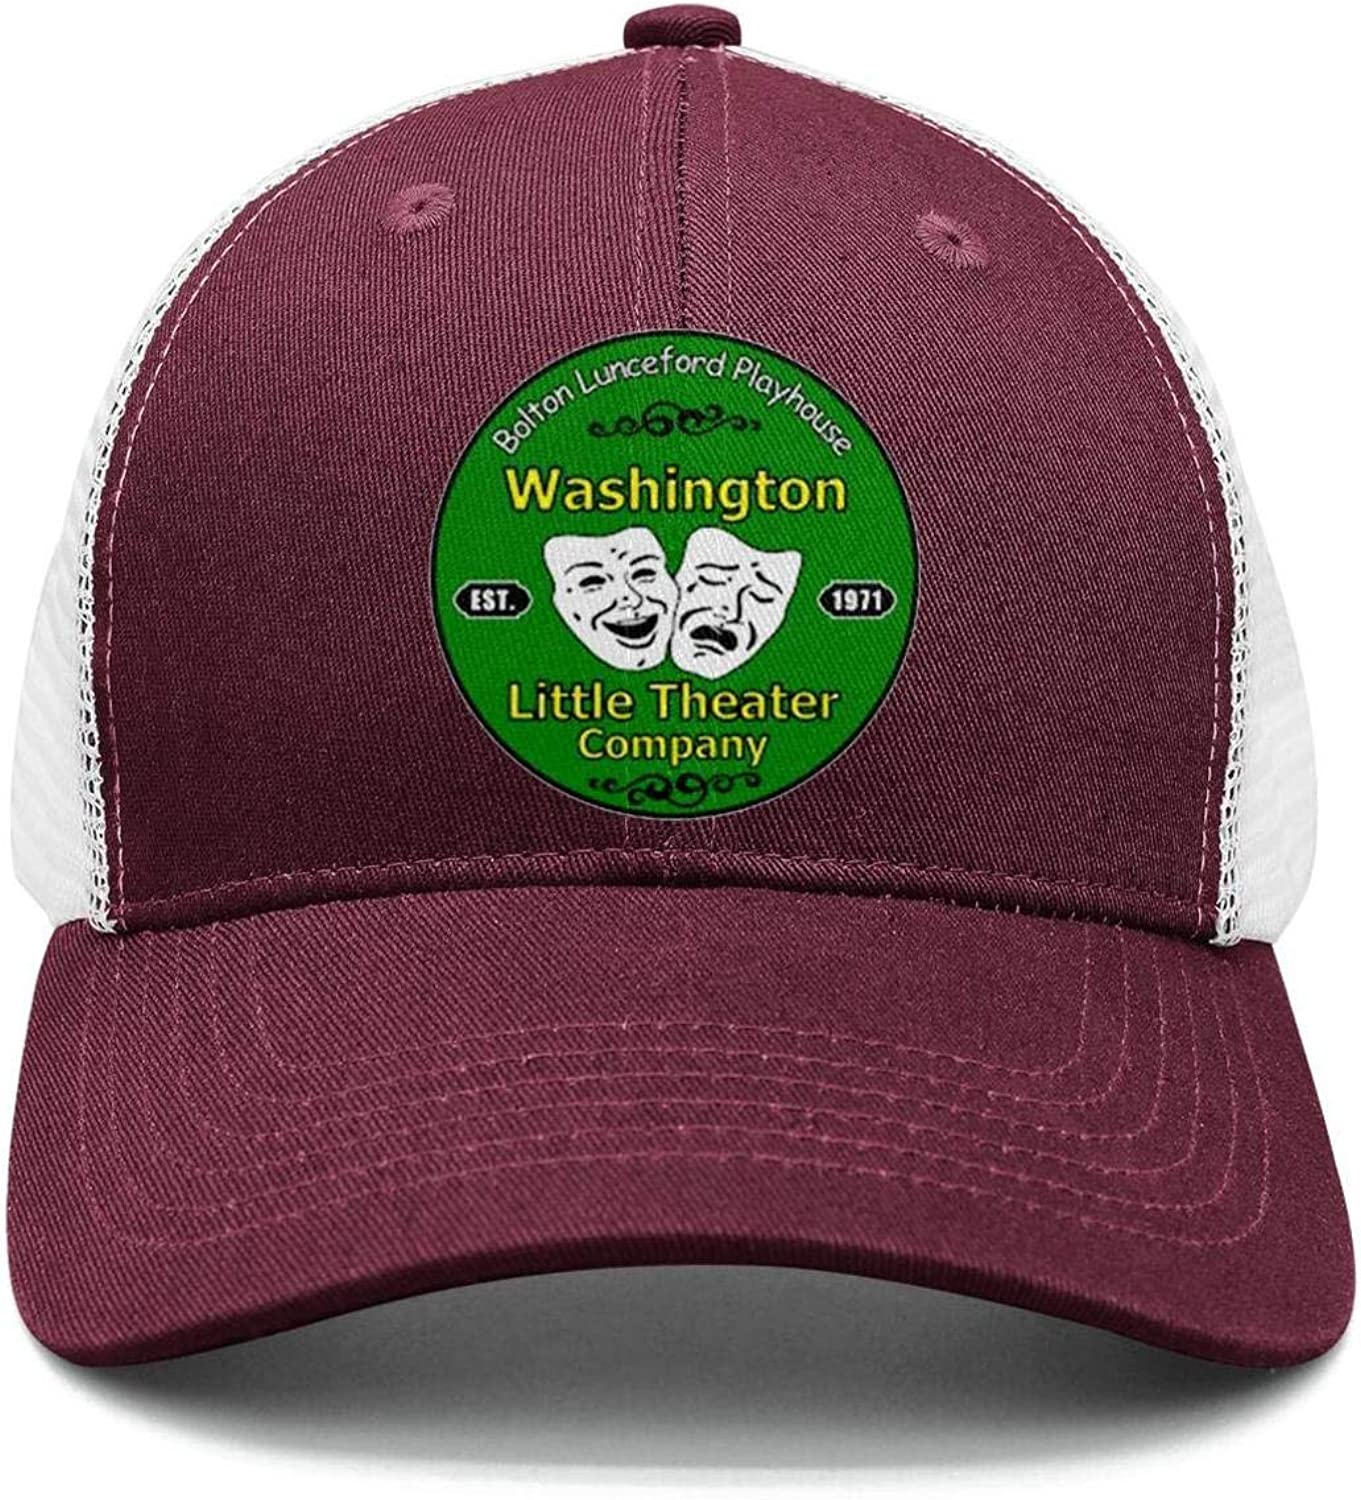 Cotton Casual Trucker hat Adjustable Fits Mesh Baseball Caps for Man and Woman smsdpmc Washington-Funny-Evergreen-State